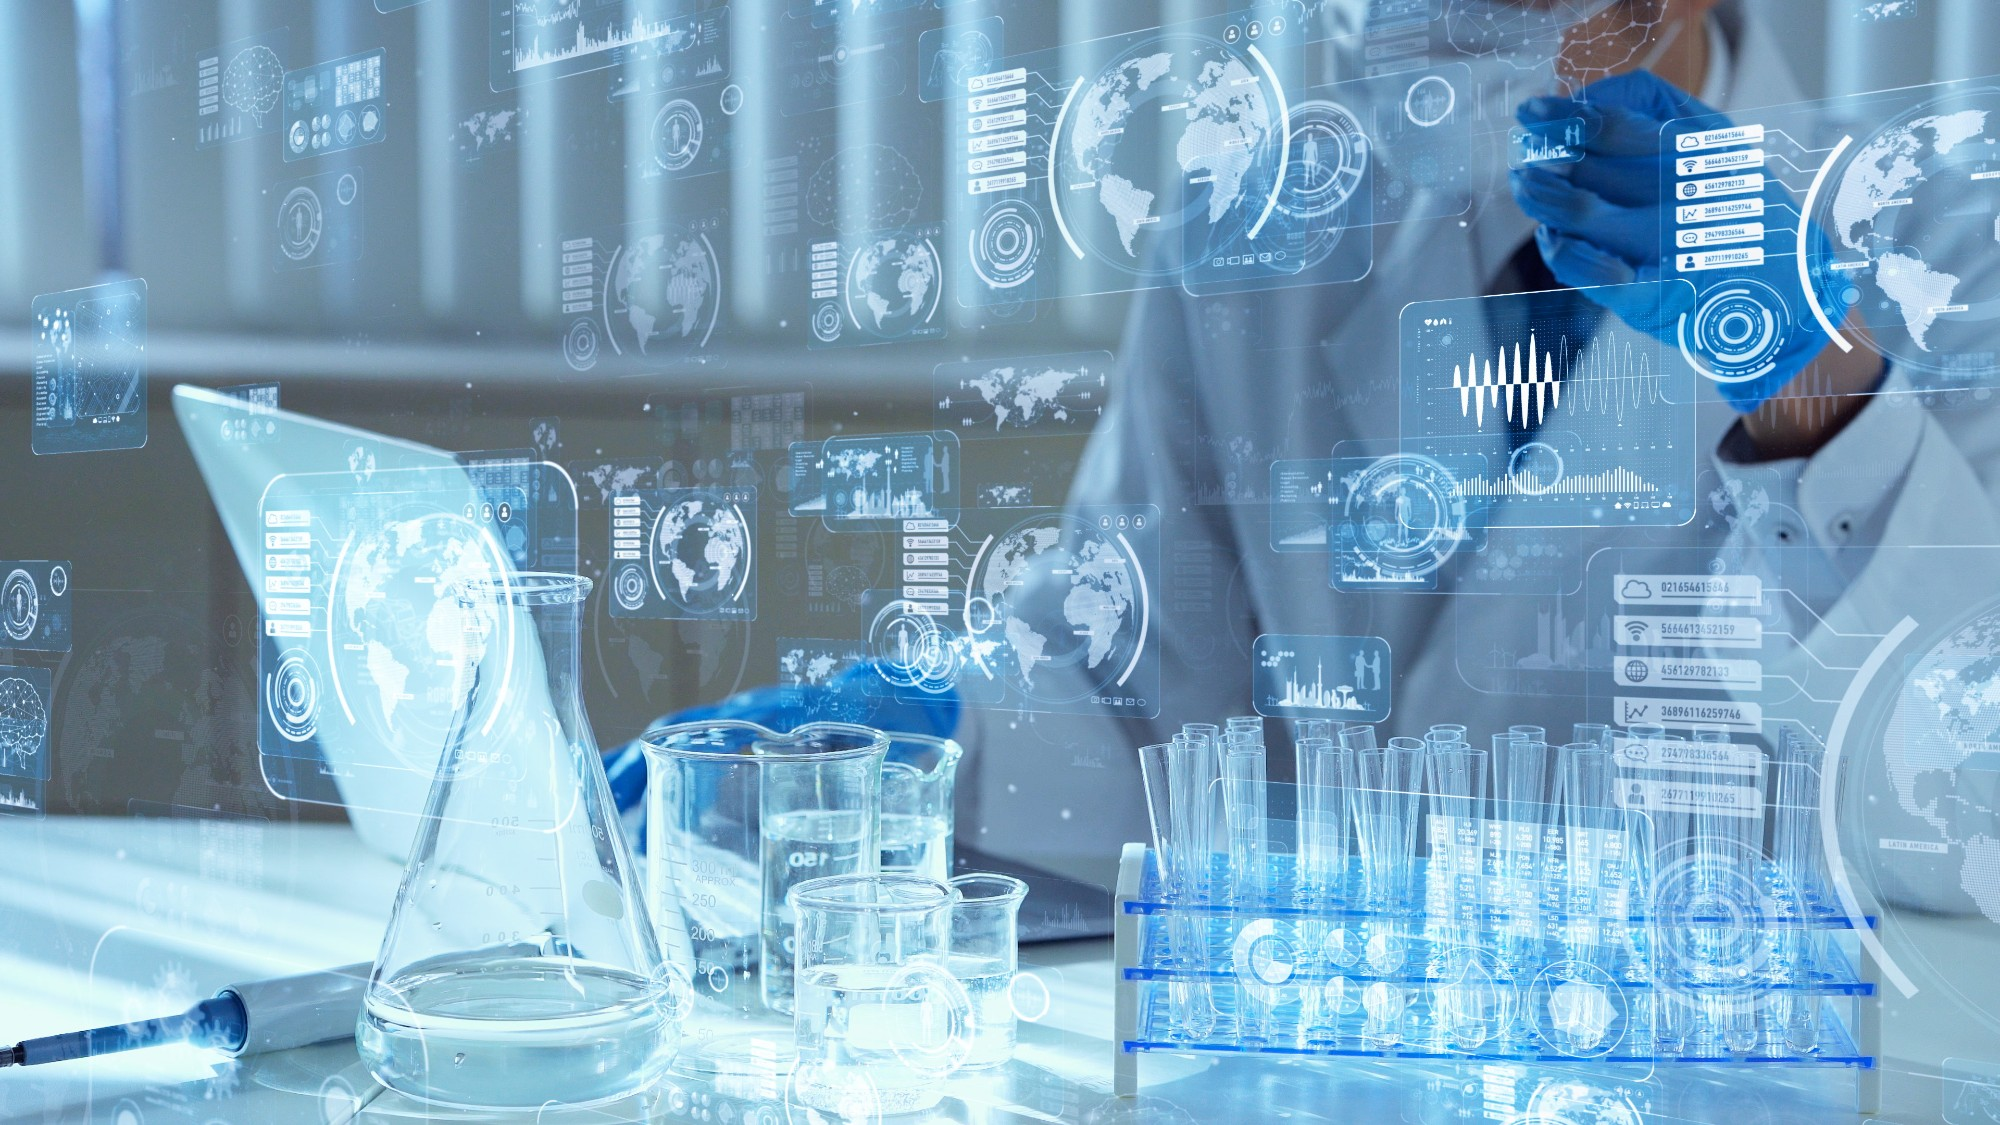 BioMed Recruitment for Bio Tech and medical device companies